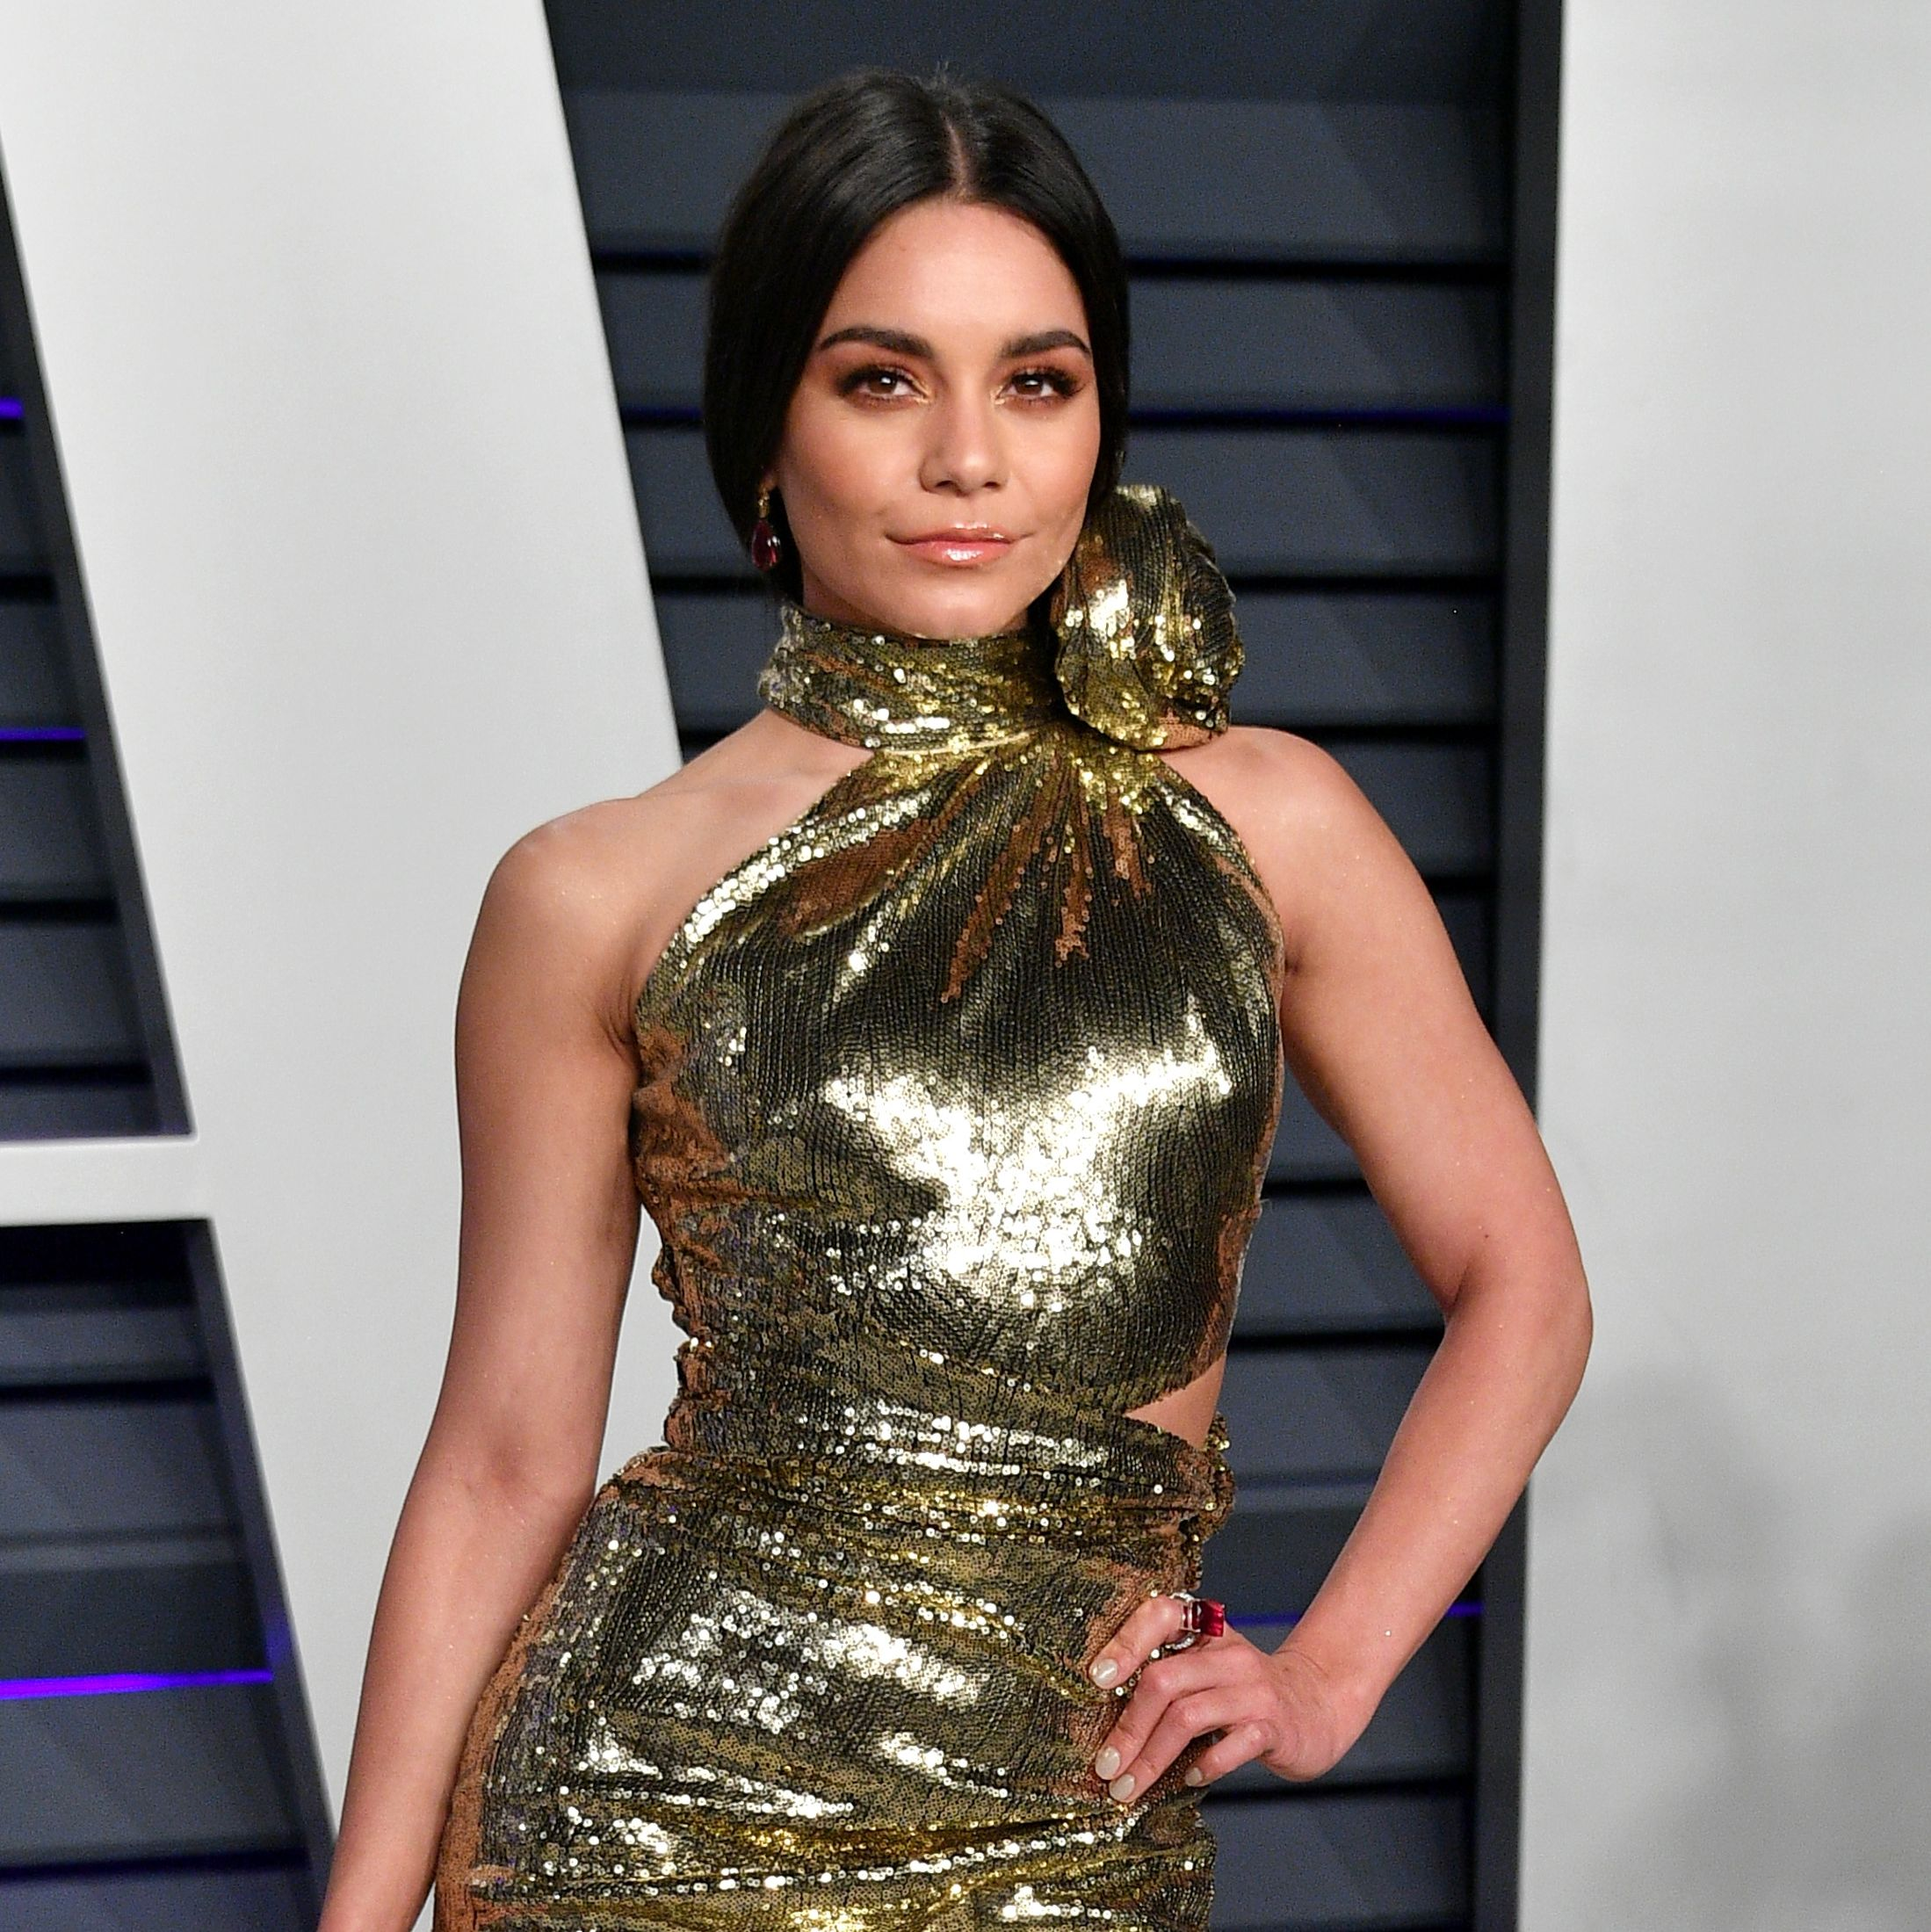 Vanessa Hudgens to Executive Produce and Star in Netflix's The Knight Before Christmas